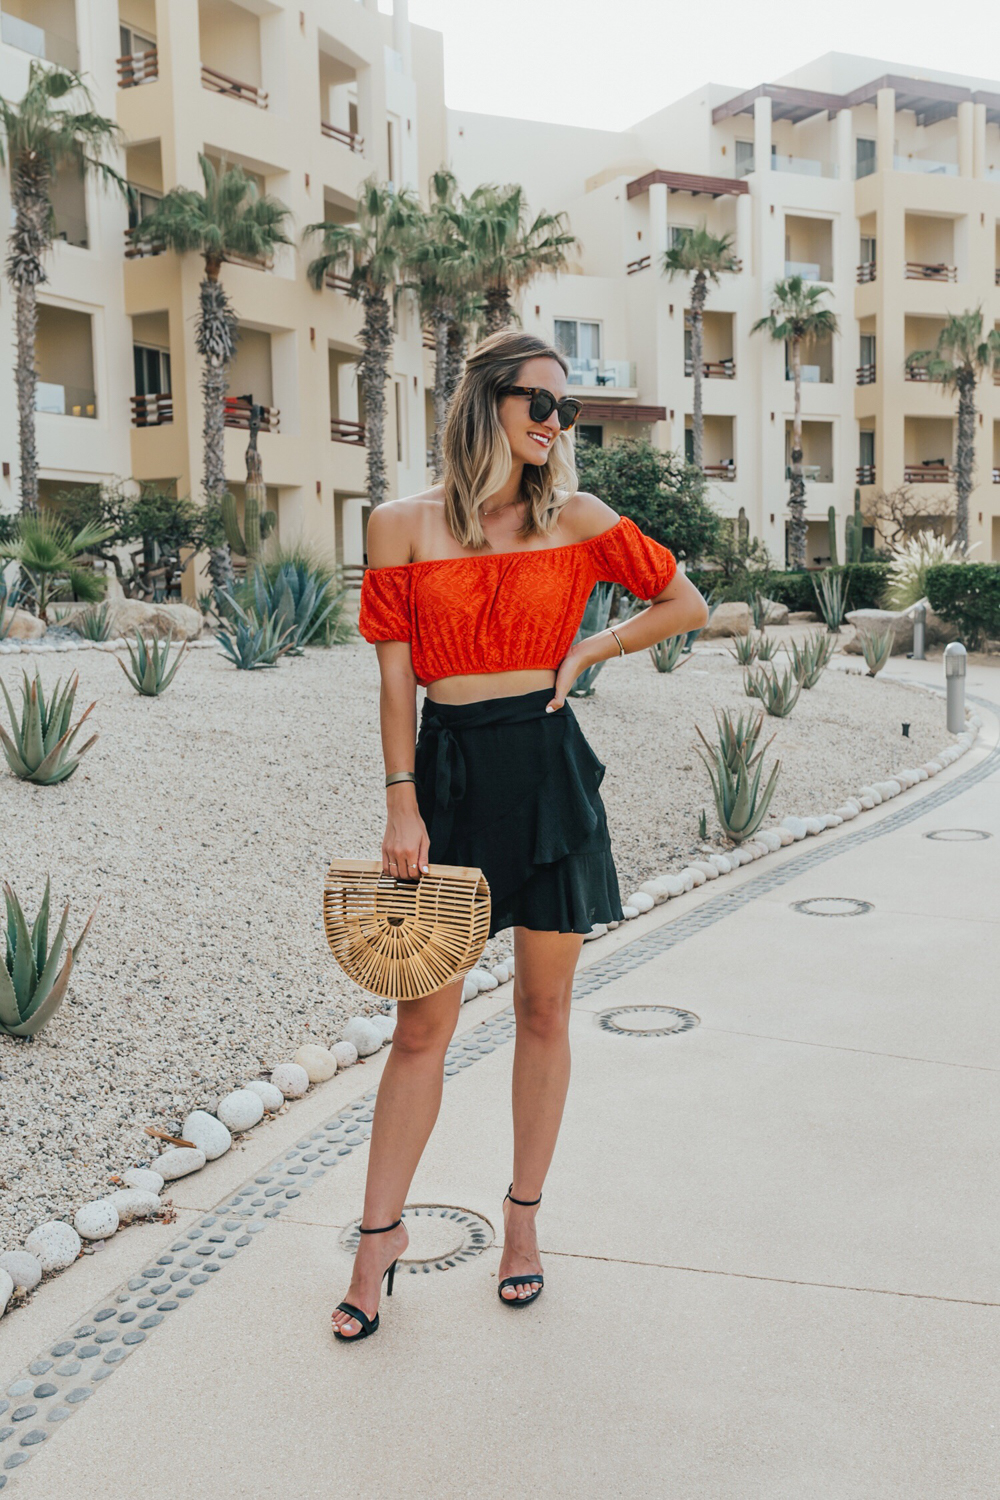 livvyland-blog-olivia-watson-travel-fashion-blogger-pueblo-bonito-pacifica-luxury-resort-los-cabos-cabo-mexico-vacation-5